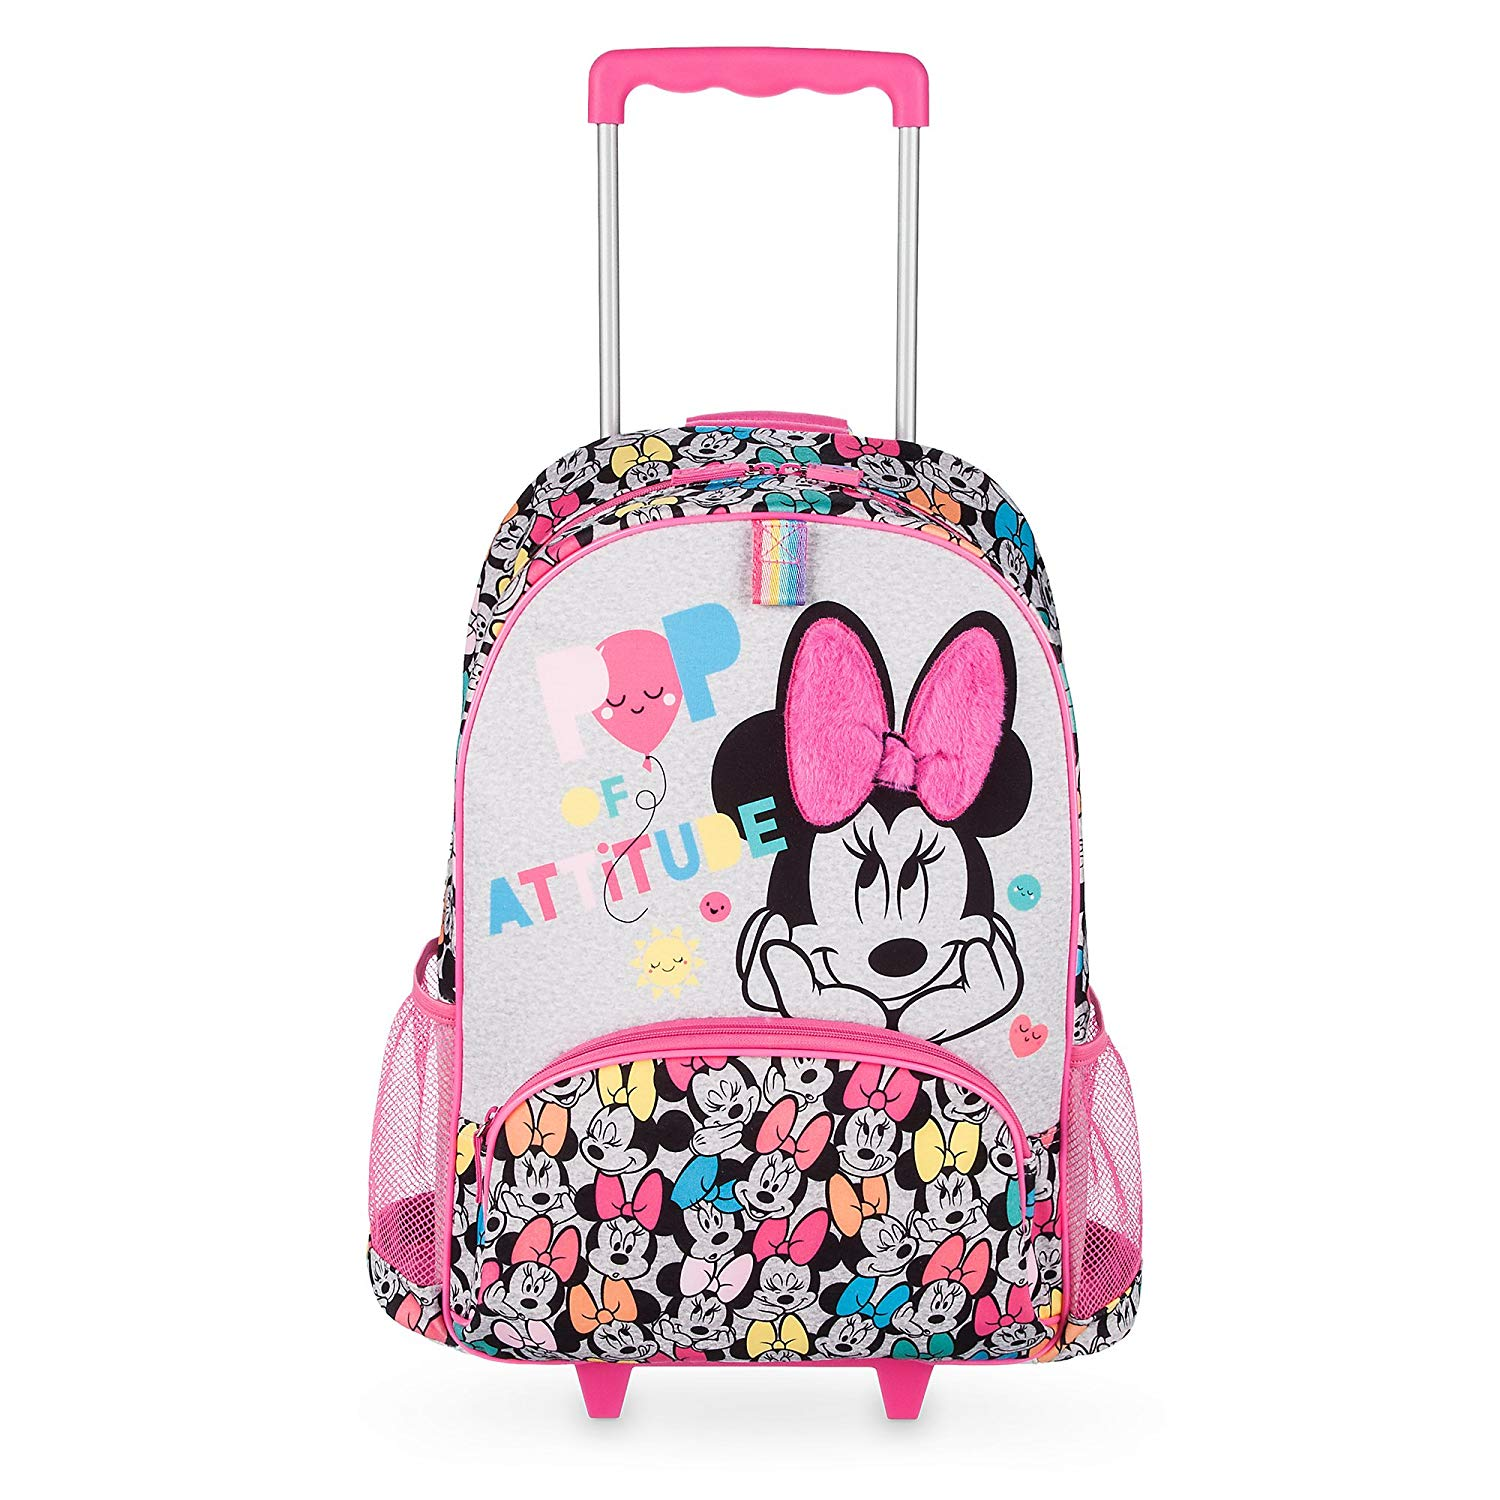 dddc2ea8d3f Get Quotations · Minnie Mouse Rolling Backpack